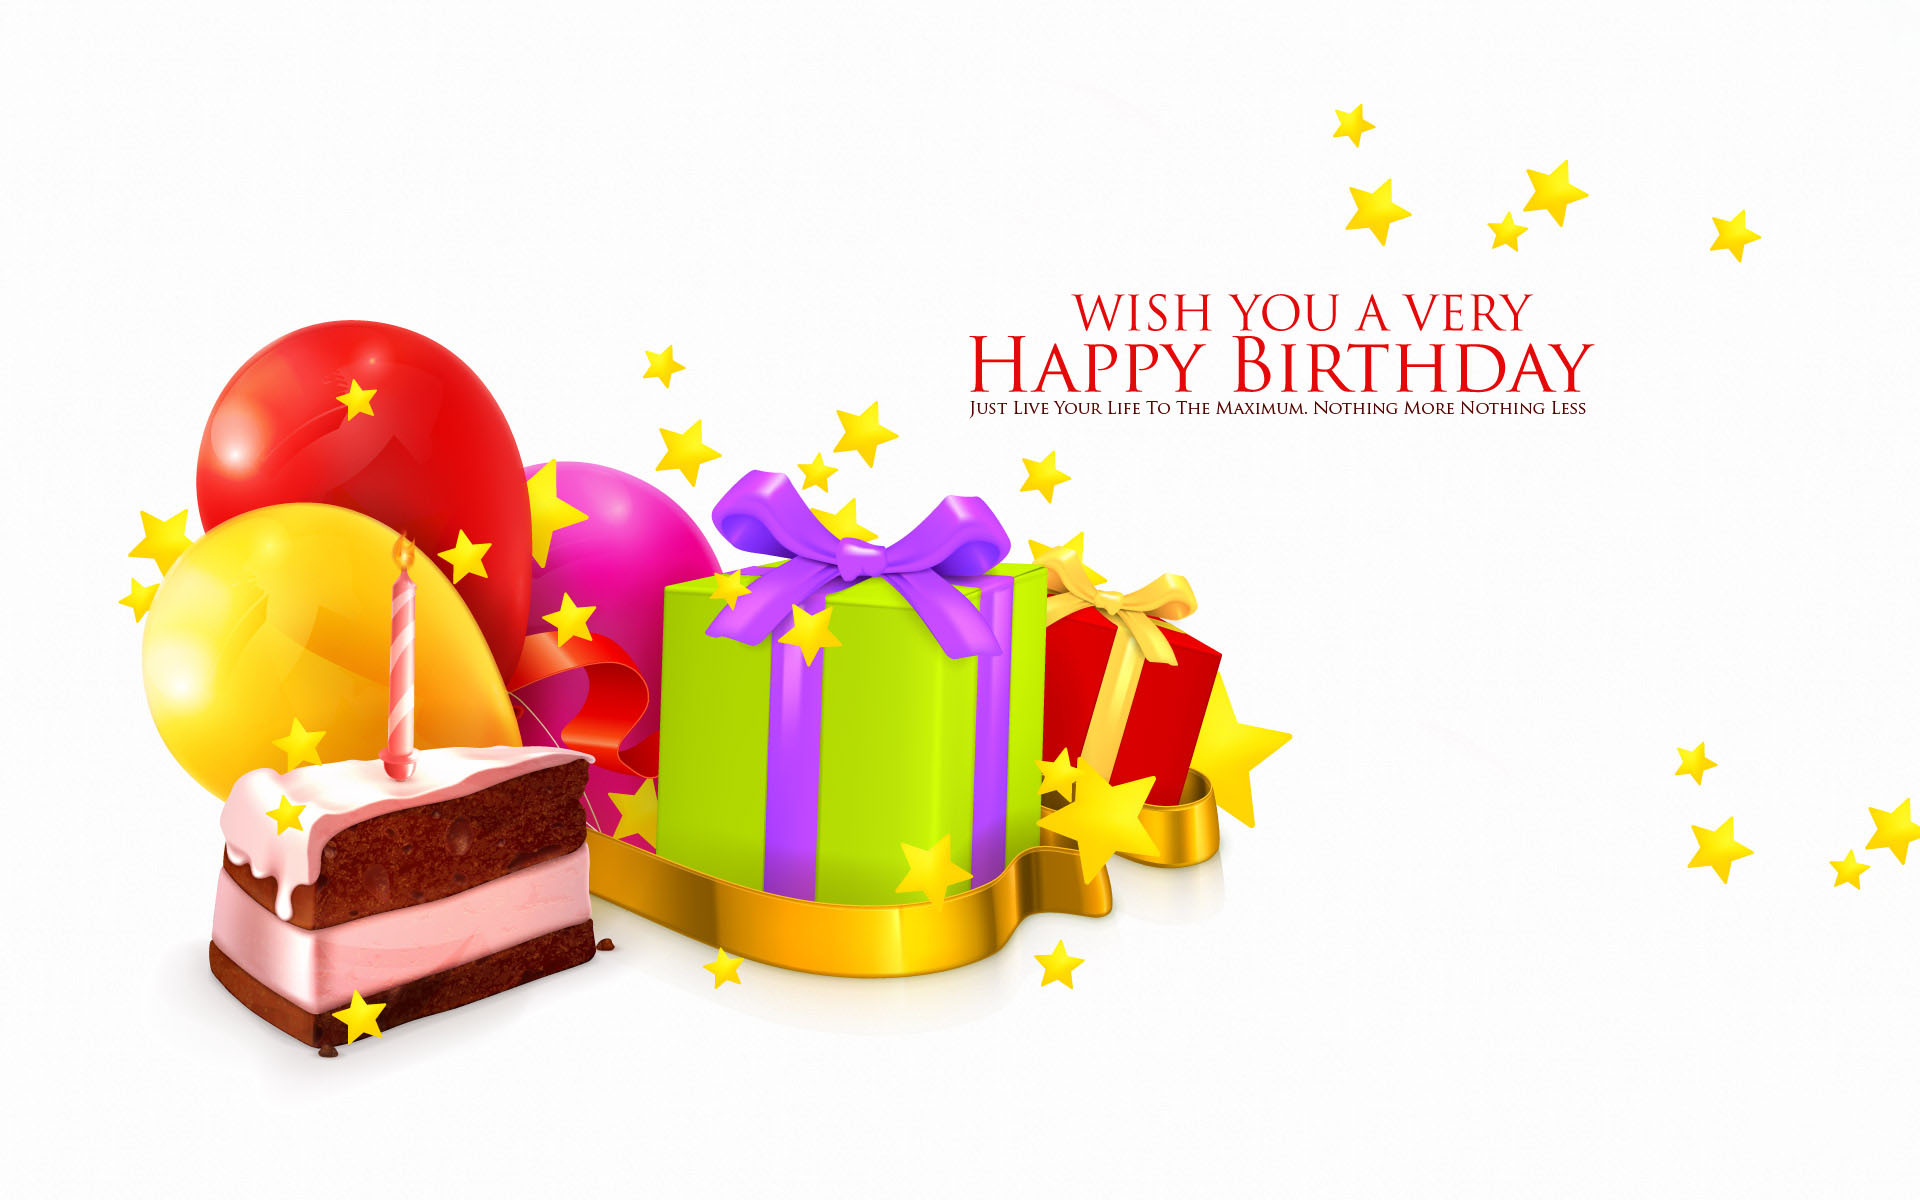 Happy Birthday Wallpapers HD Pictures One HD Wallpaper 1920x1200